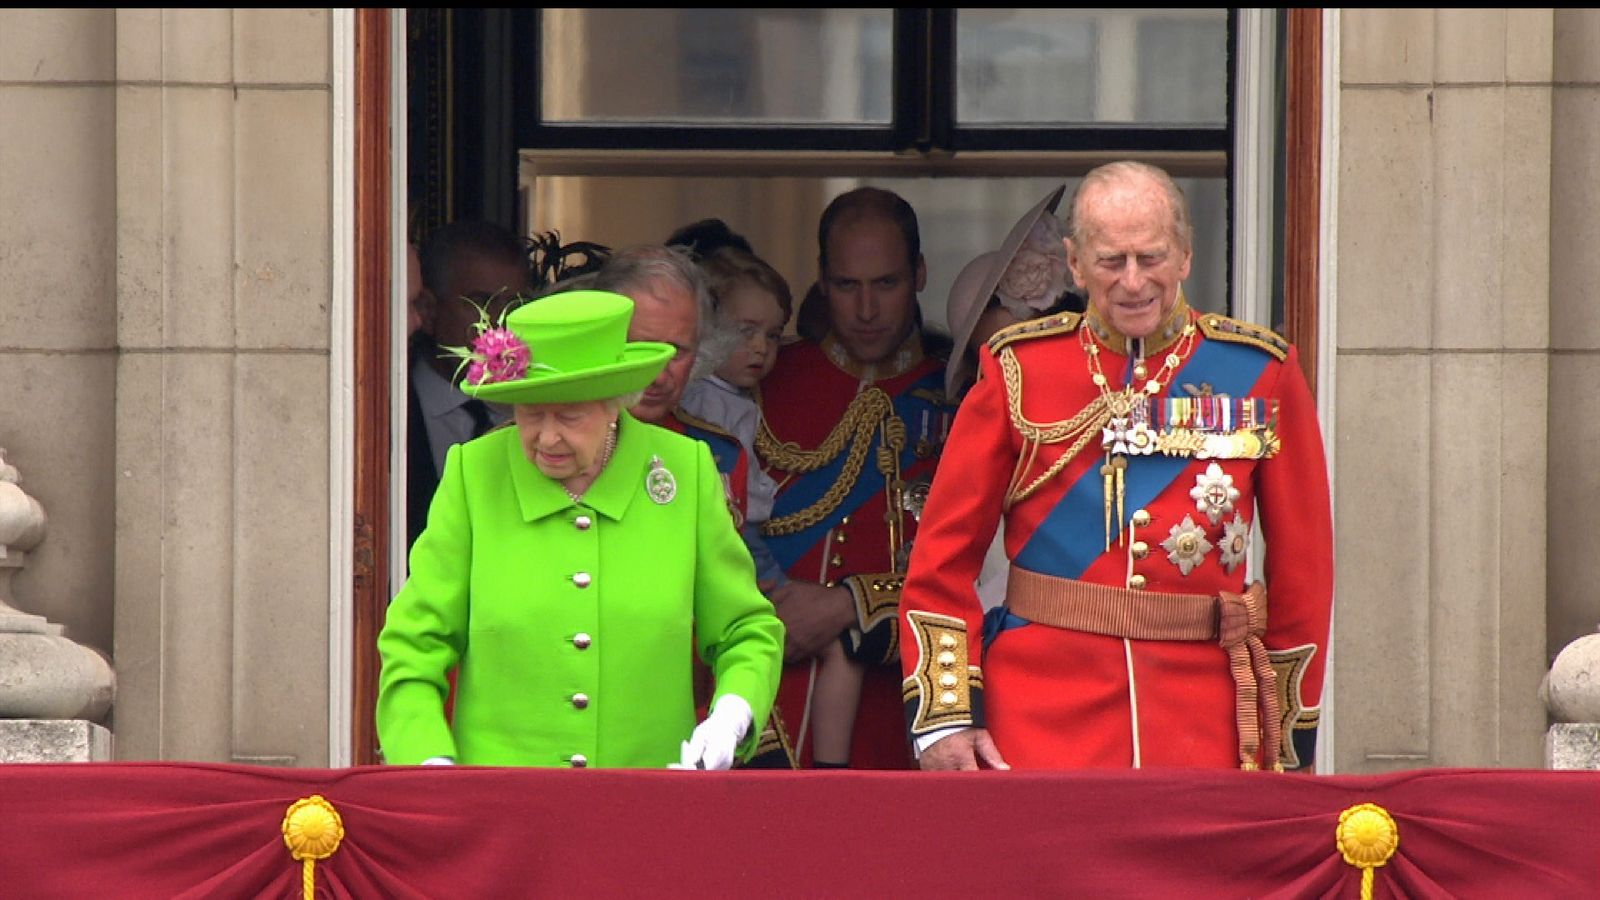 Queen and Prince Philip during Her Majesty's 90th birthday celebrations